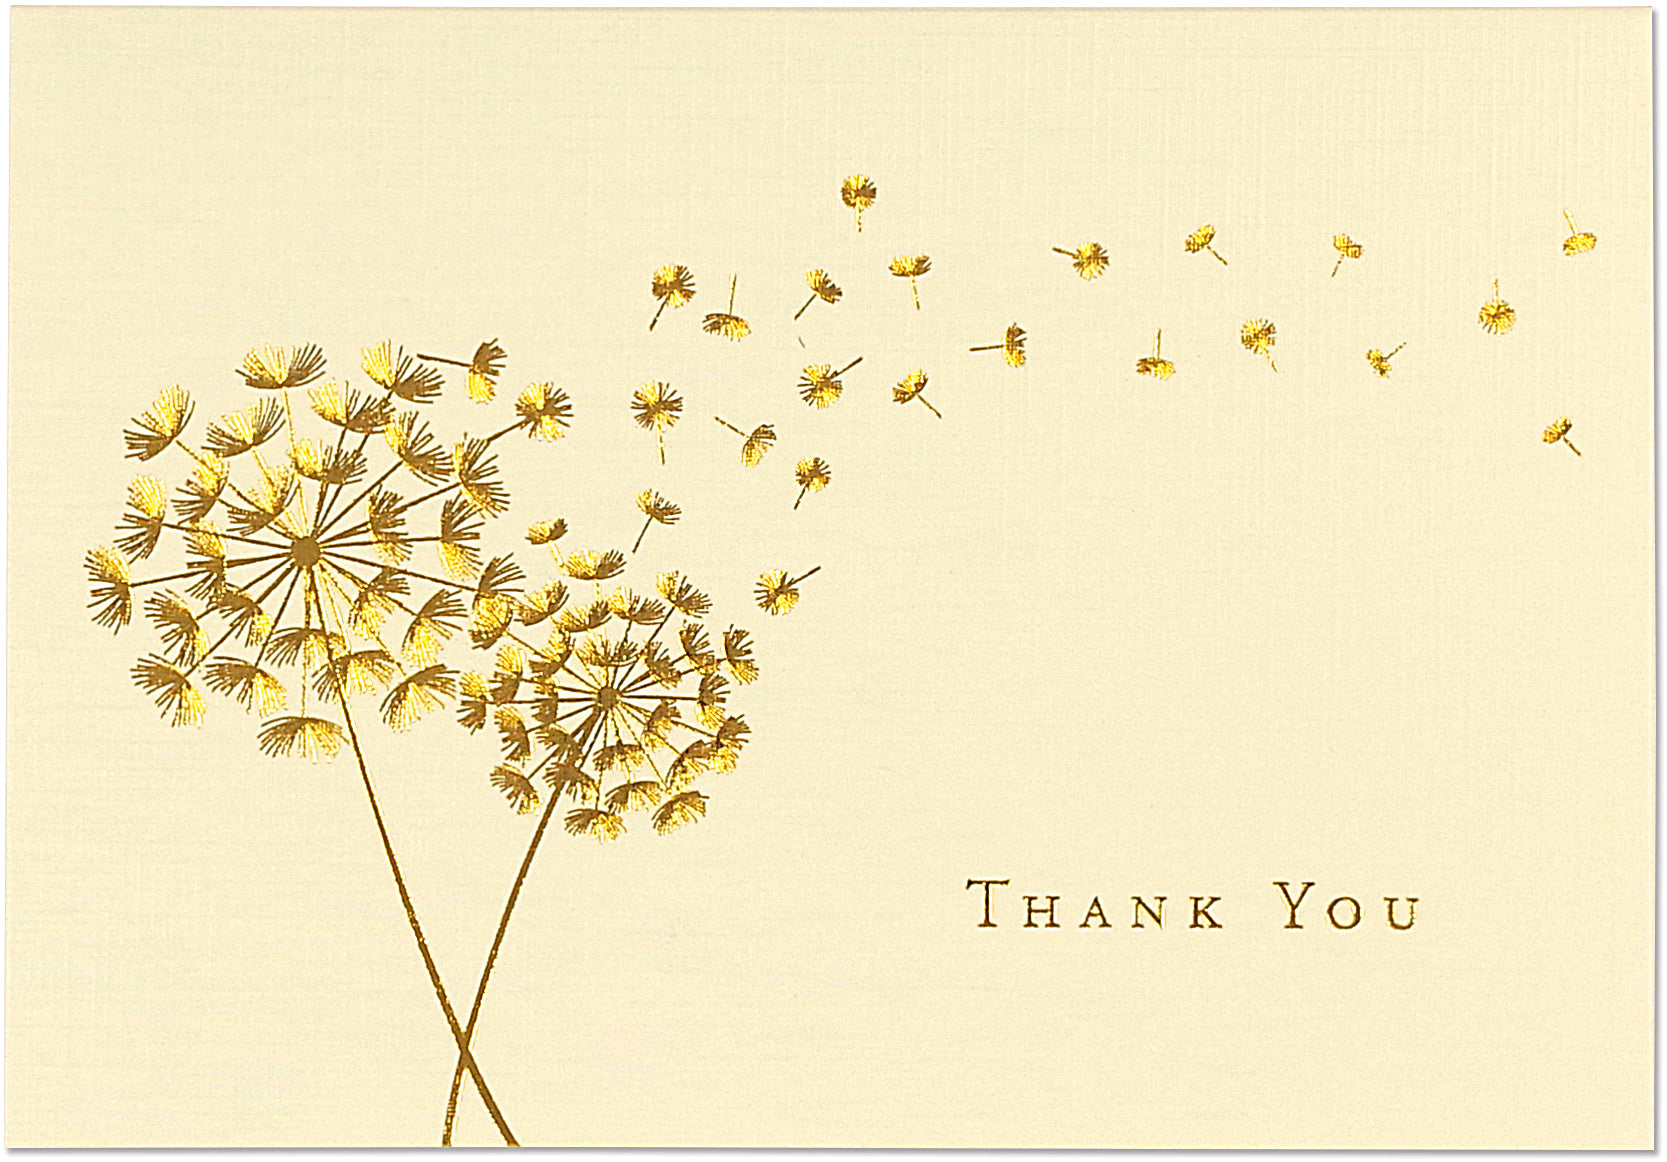 Boxed Thank You Cards - Dandelion Wishes